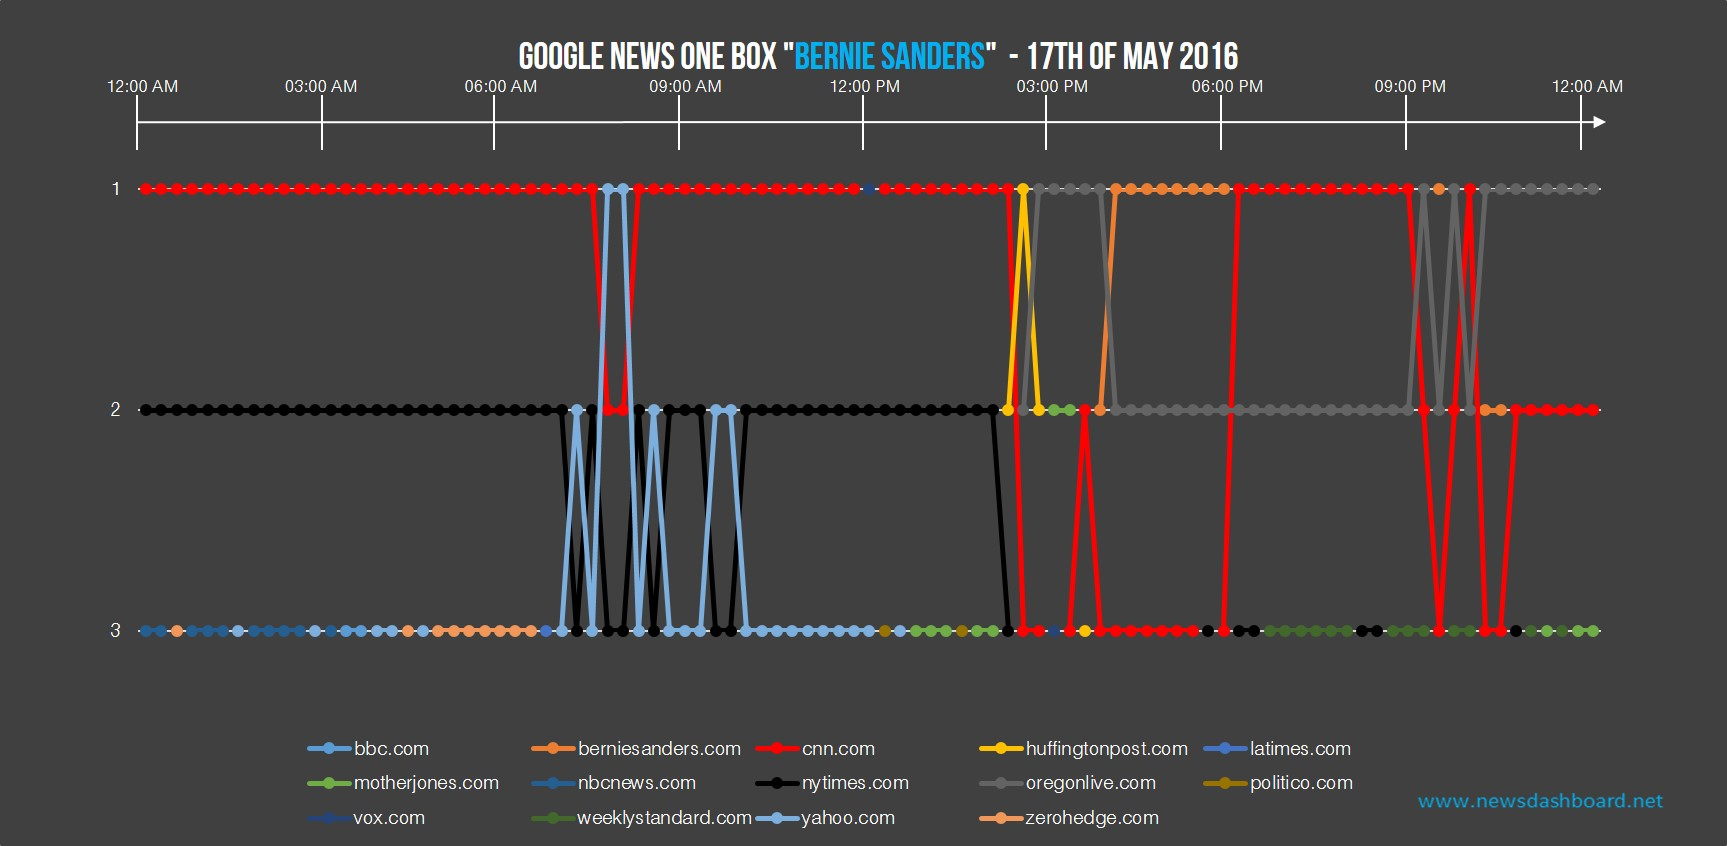 nytimes.com and oregonlive.com were also often in the Google News One Box.